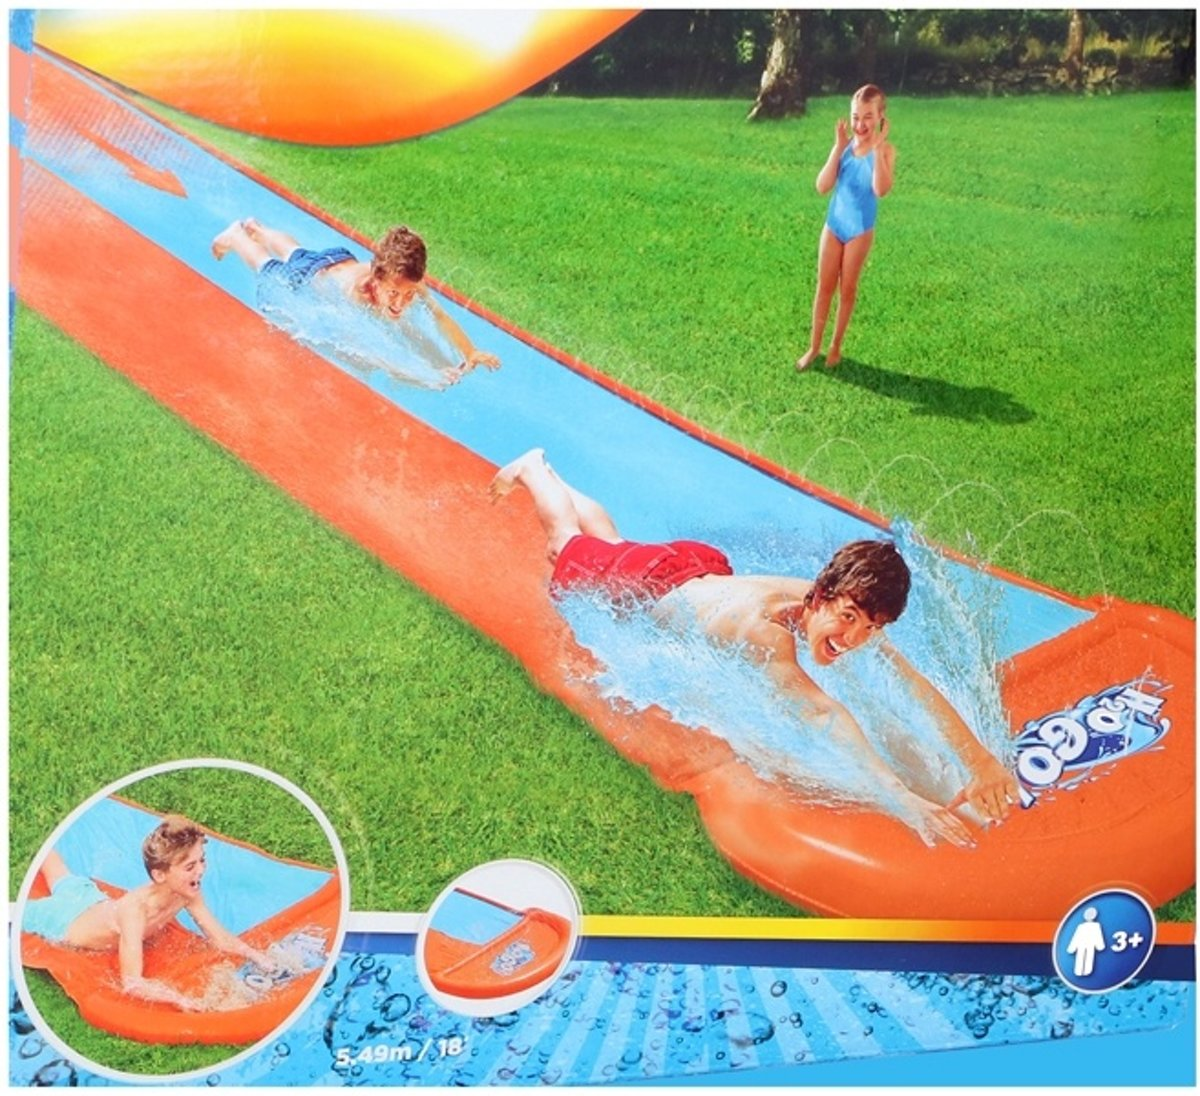 Waterglijbaan double slide